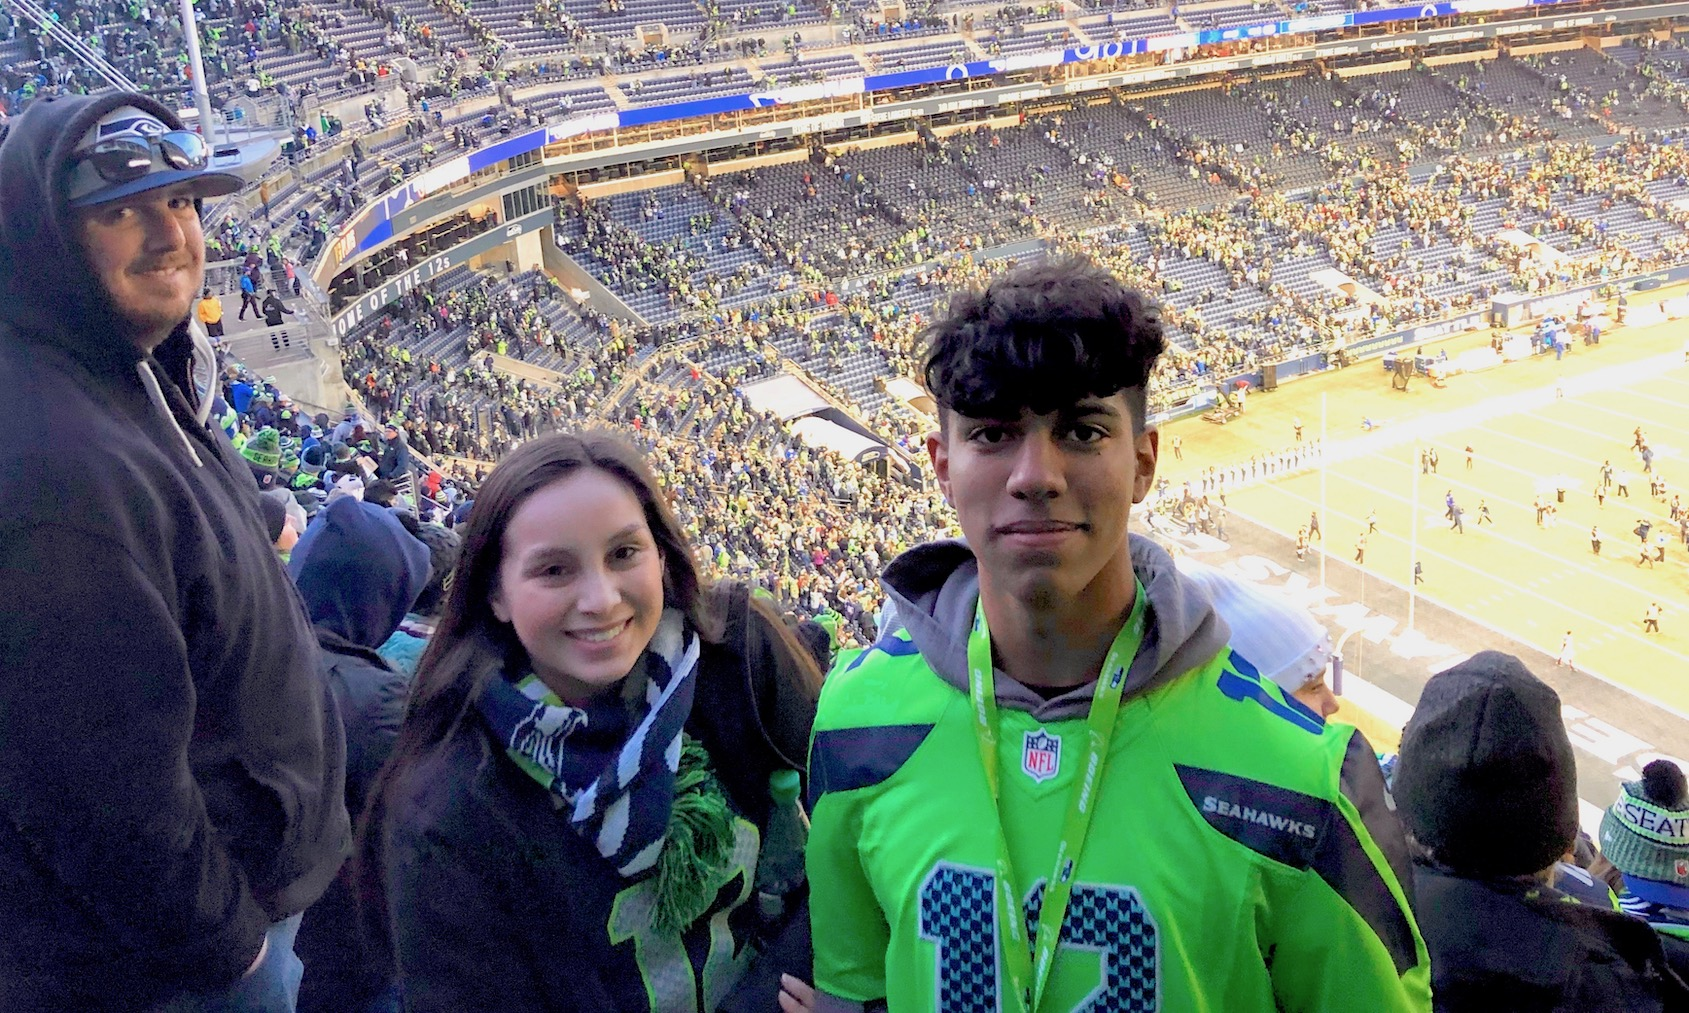 GHS MESA students at Seahawks game.